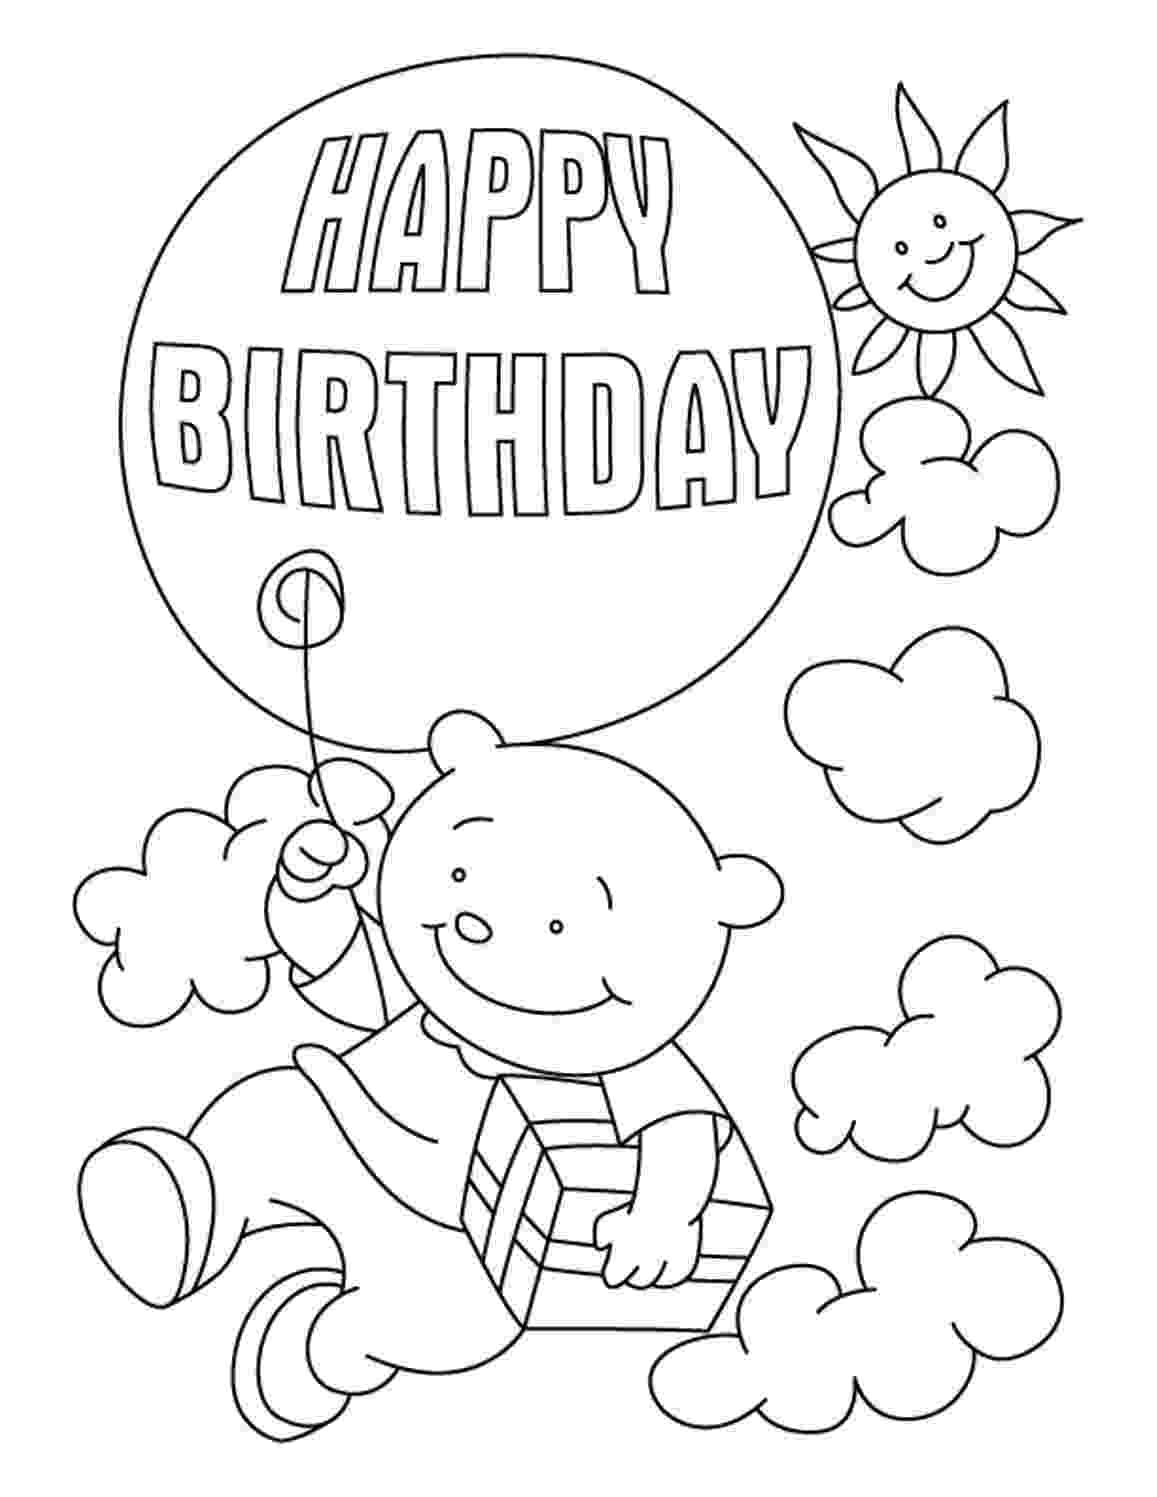 printable colouring birthday pictures free printable birthday cake coloring pages for kids pictures birthday colouring printable 1 1